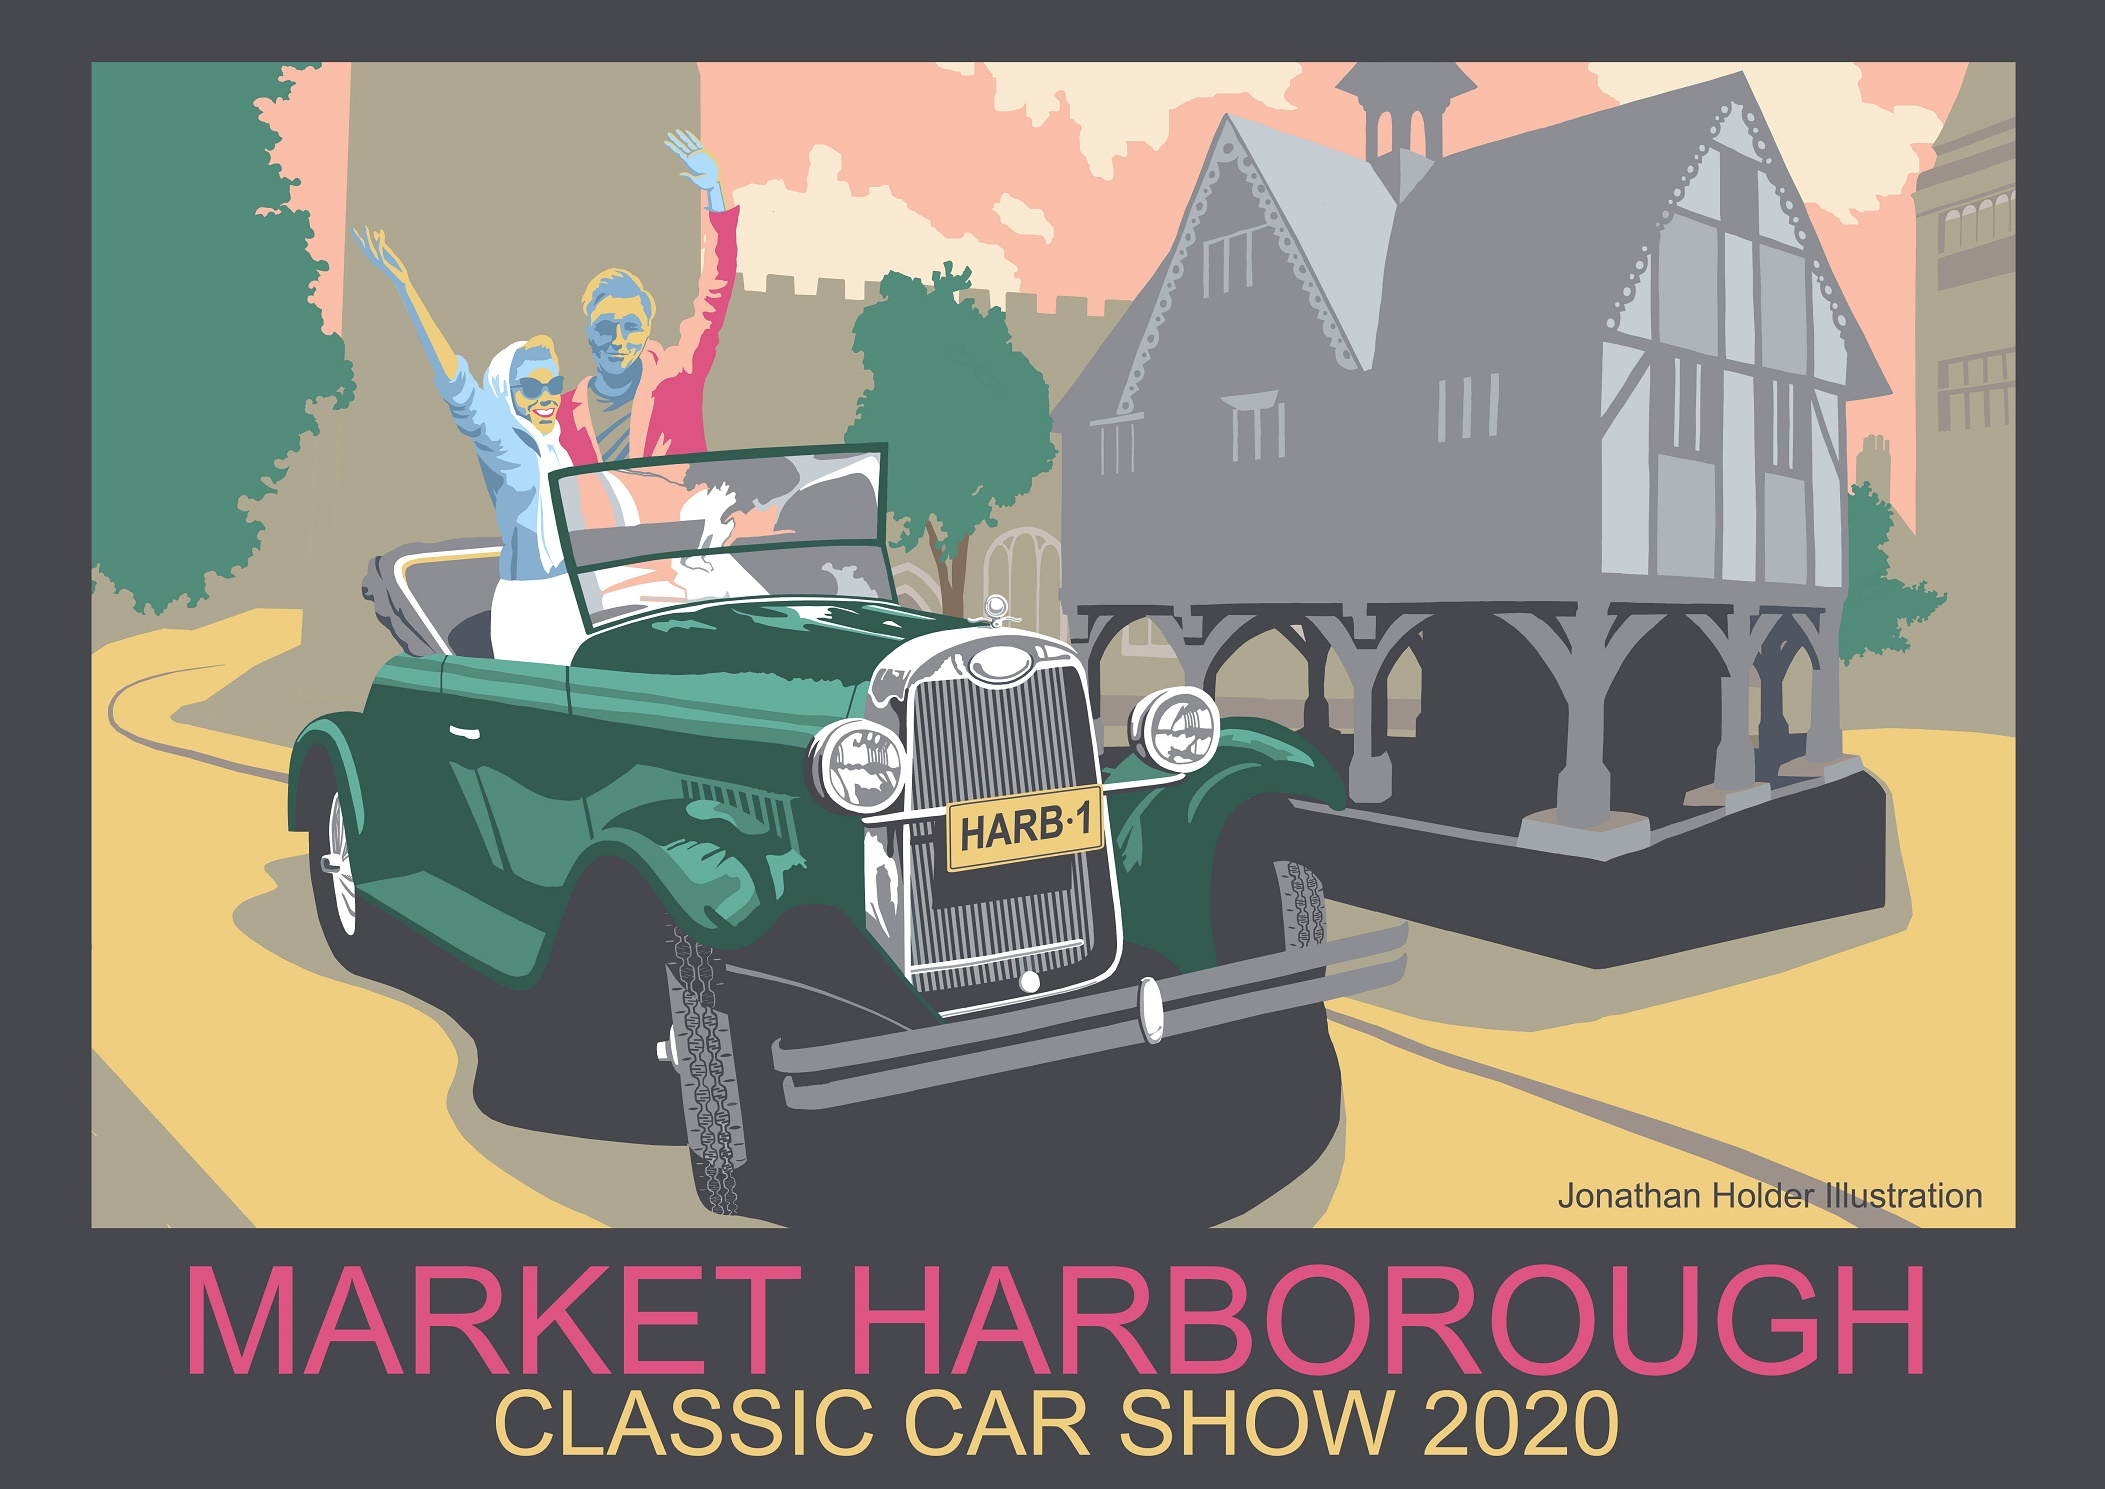 Classic car show poster 2020